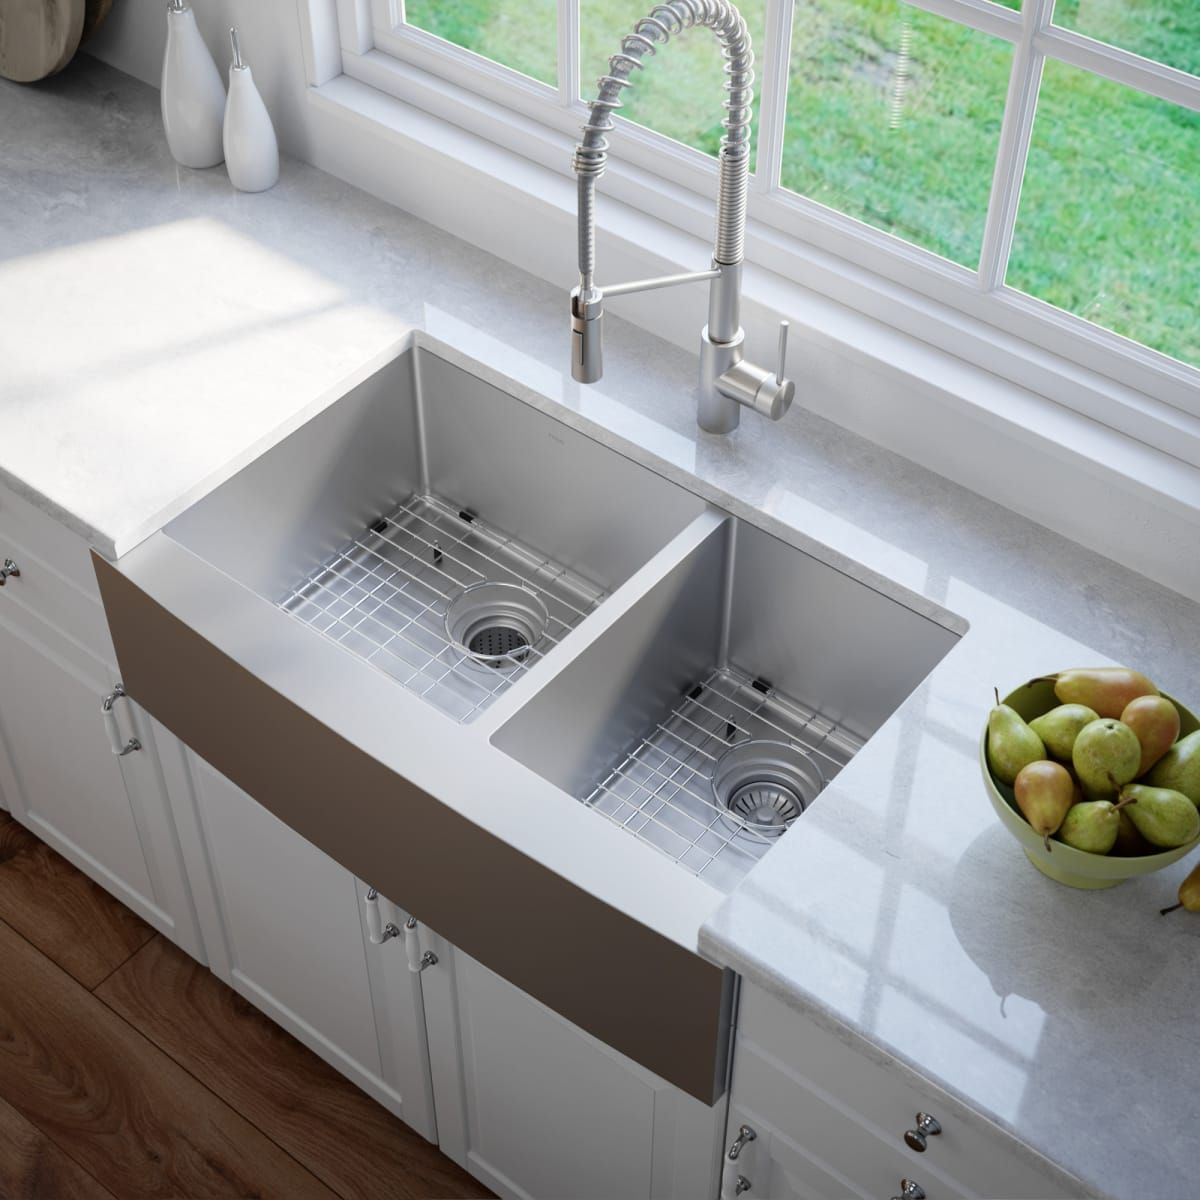 Kraus Khf203 33 Stainless Steel 32 7 8 Double Basin 16 Gauge Stainless Steel Kitchen Sink Farmhouse Sink Kitchen Farmhouse Style Kitchen Kitchen Decor Modern